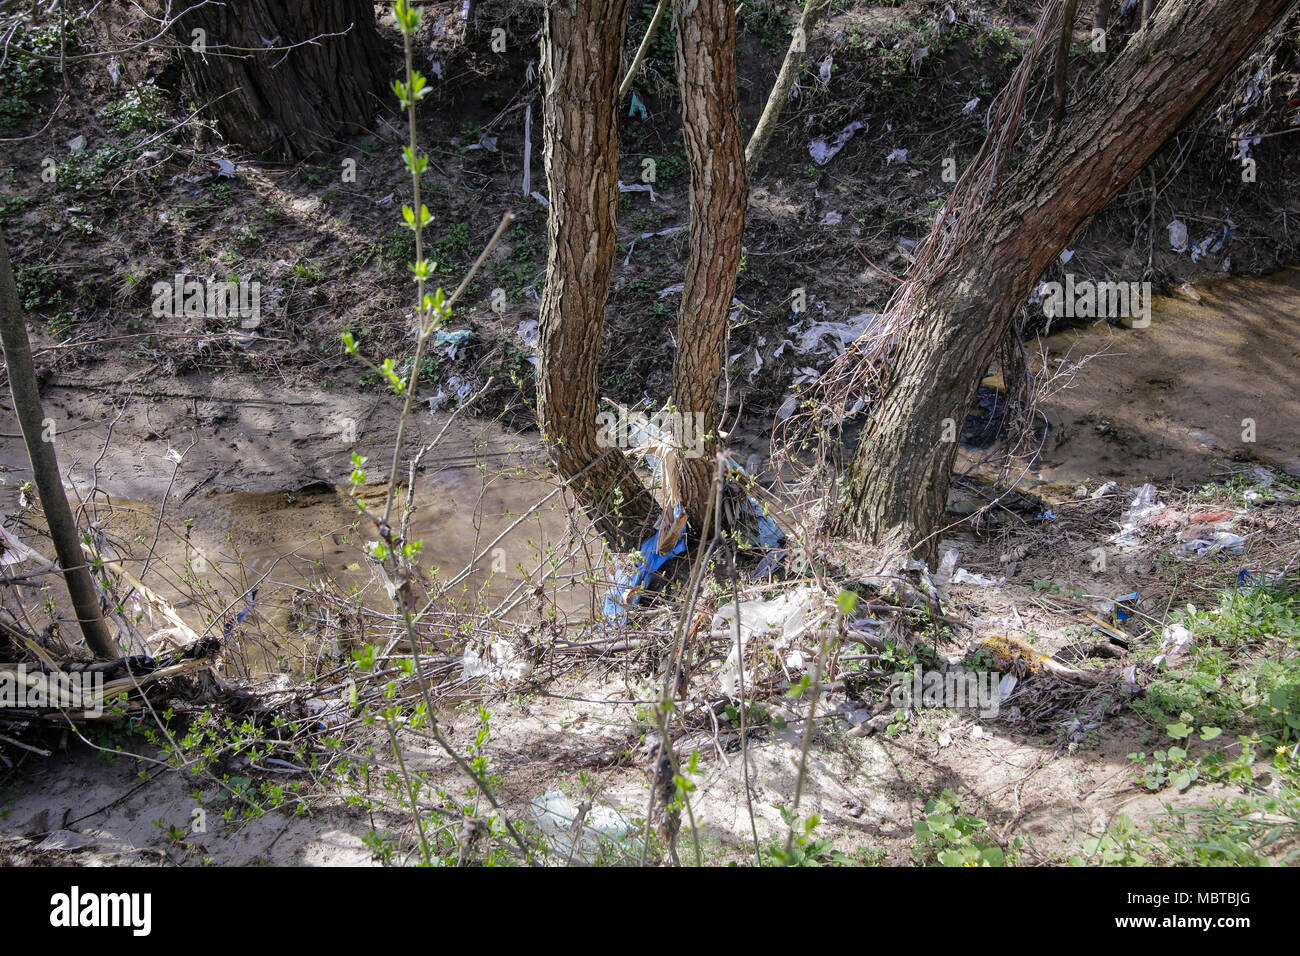 Heavy polluted water stream with domestic garbage - Stock Image